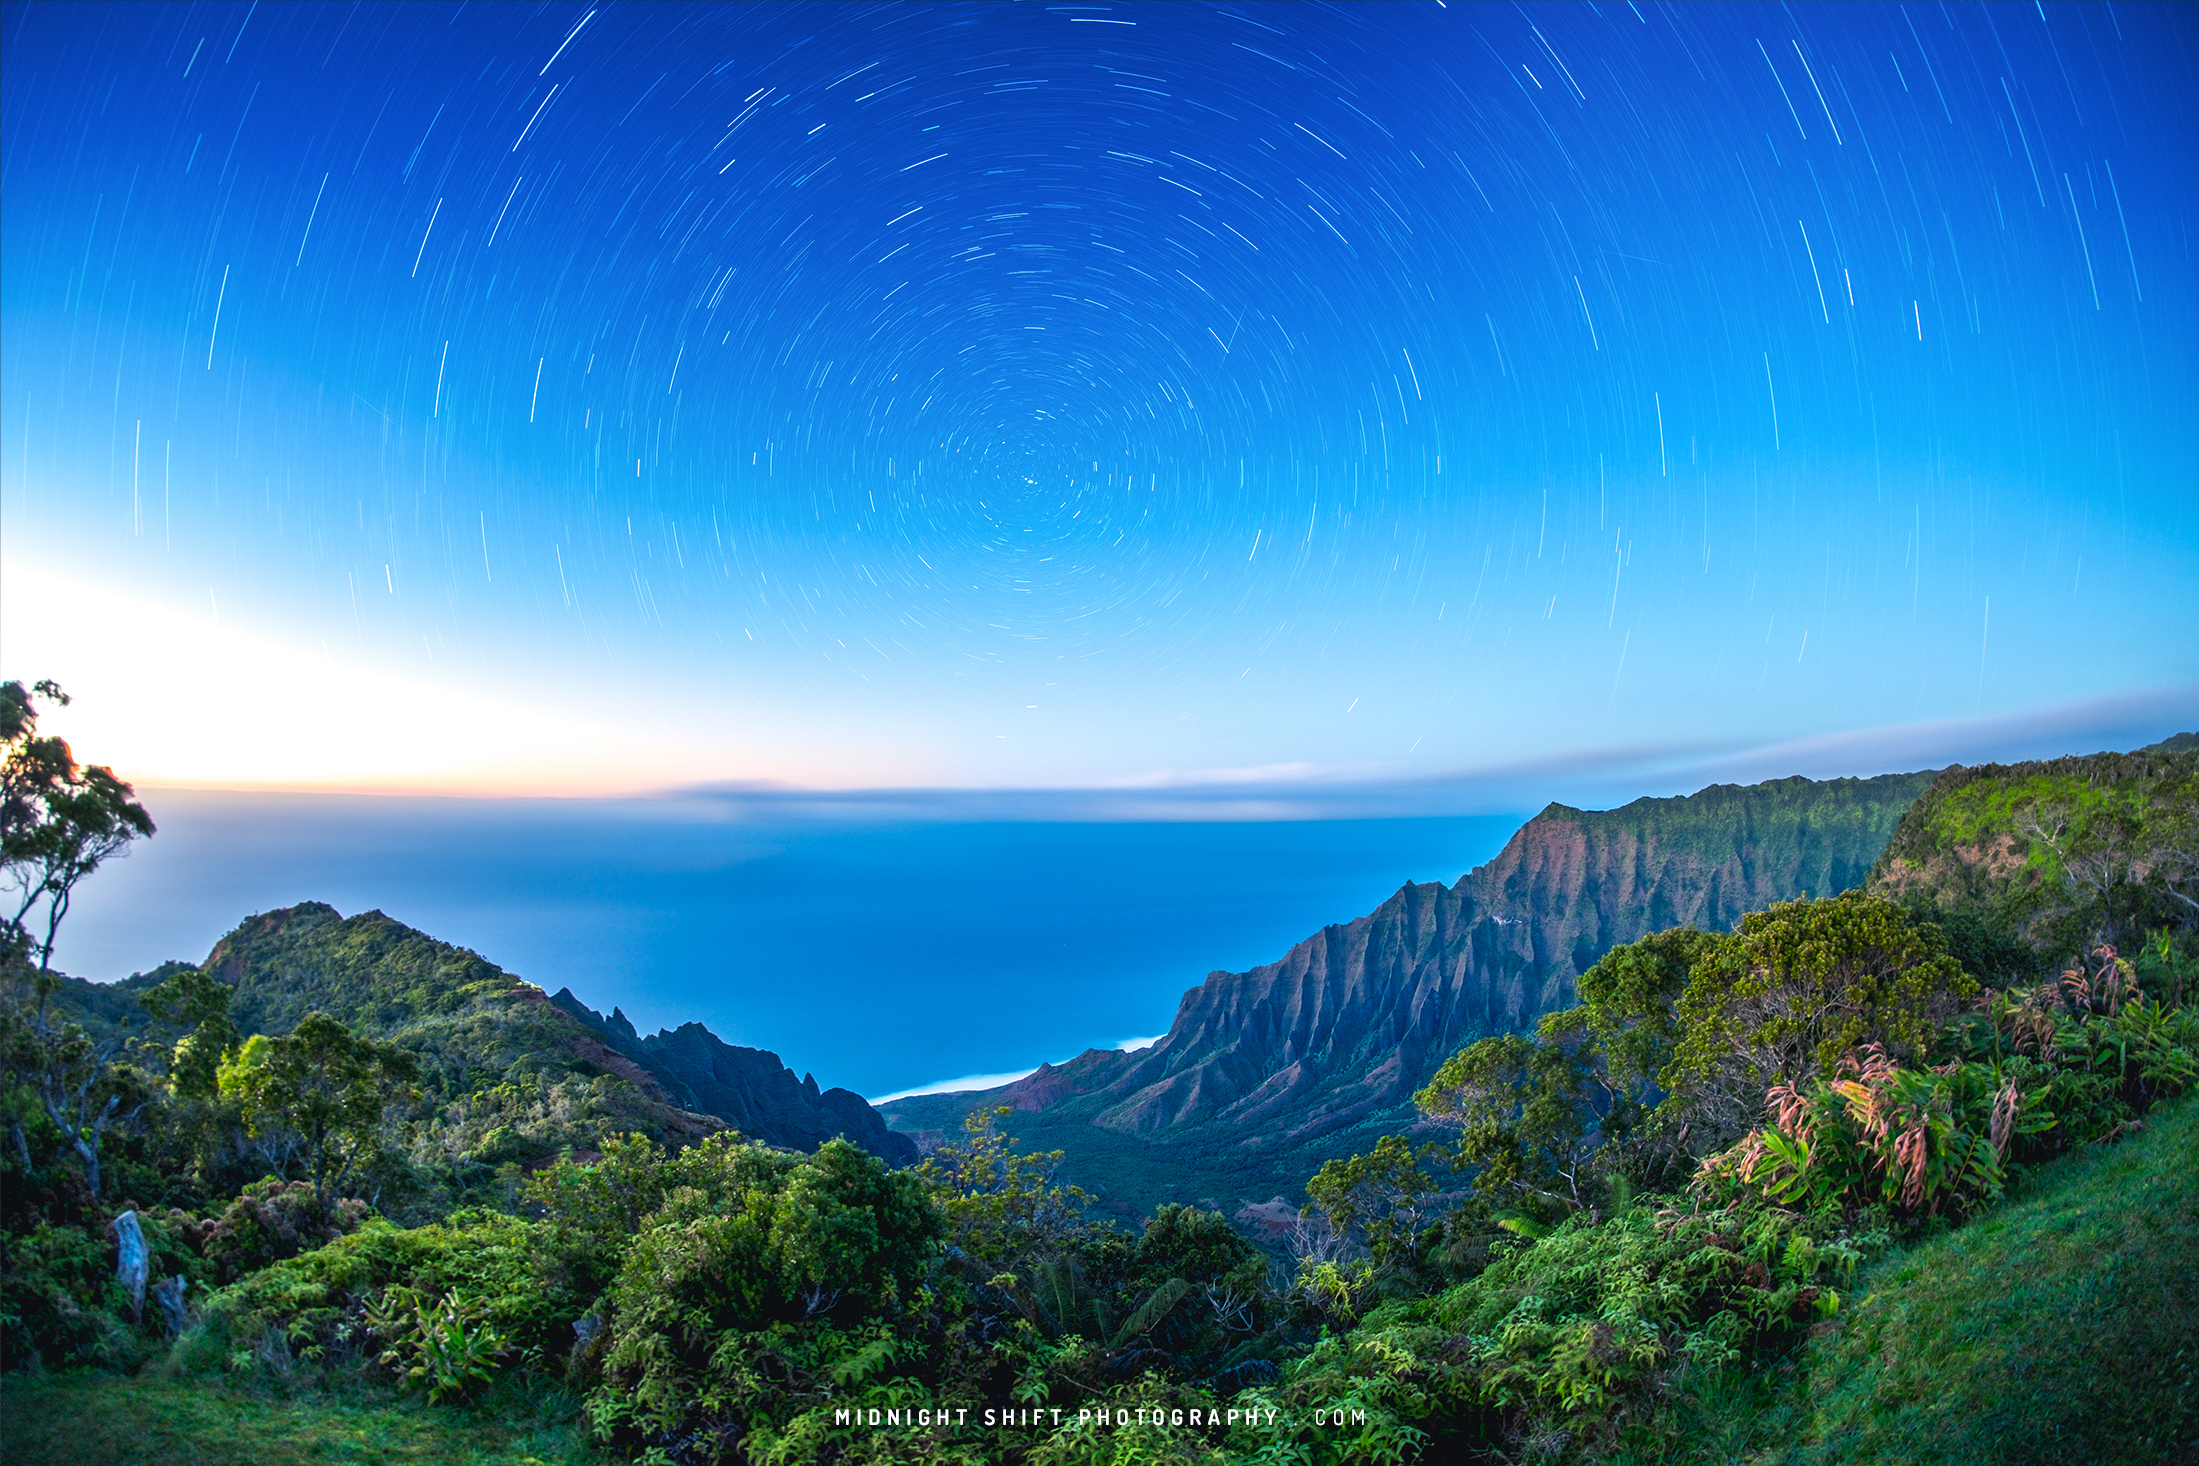 Star trails I captured at Kalalau Lookout on the island of Kauai, Hawaii.